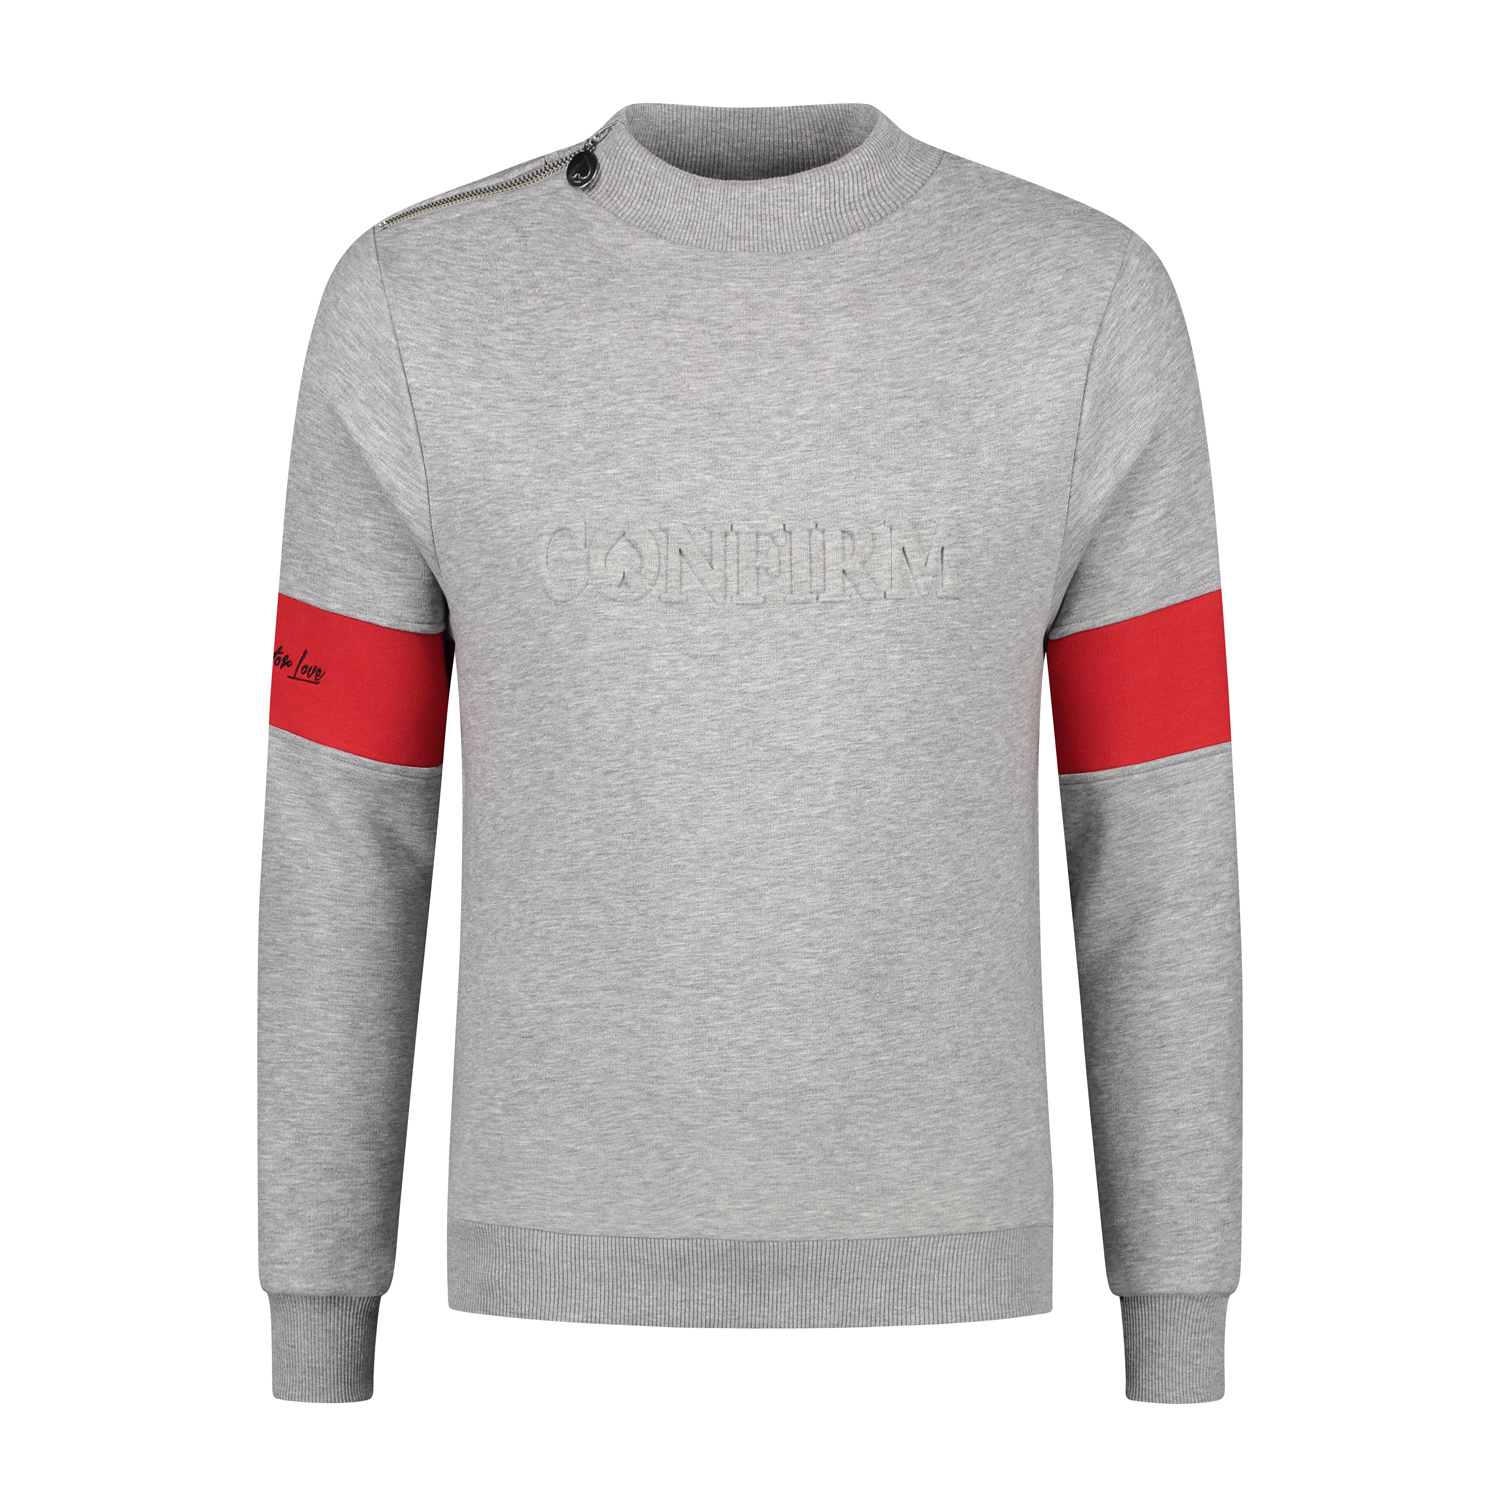 Confirm | Brand Zip Sweater Blind for Love - Grey-1